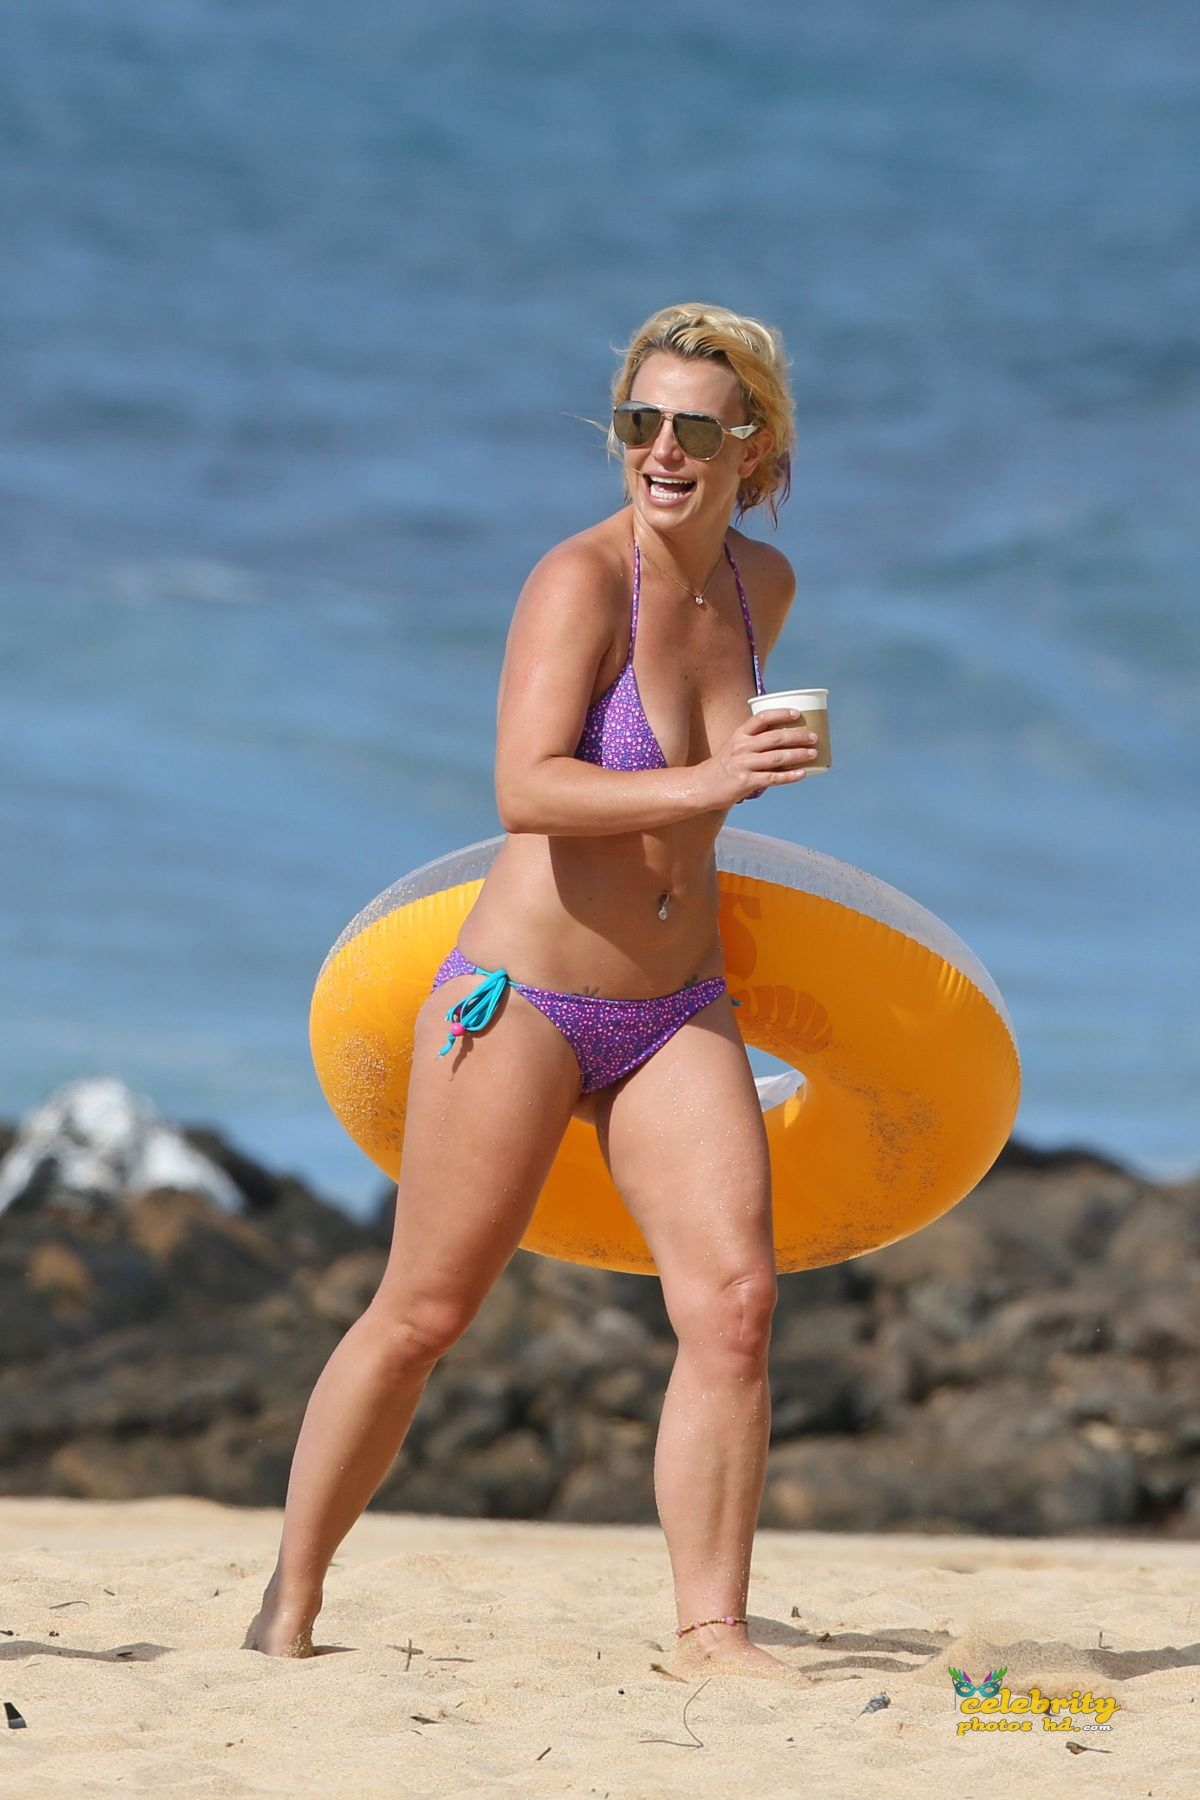 britney-spears-in-bikini-at-a-beach-in-hawaii-07-23-2015_17